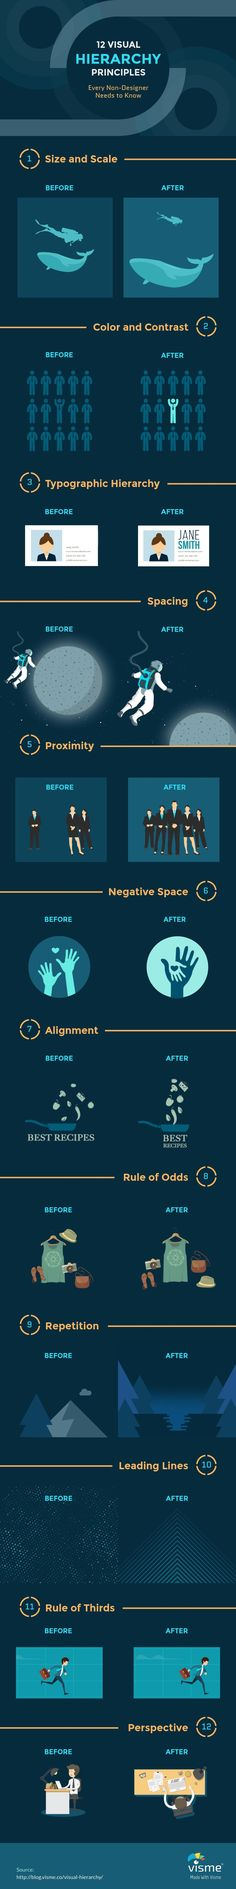 12 #Visual Hierarchy Principles Every Non-Designer Needs to Know #Infographic #Design